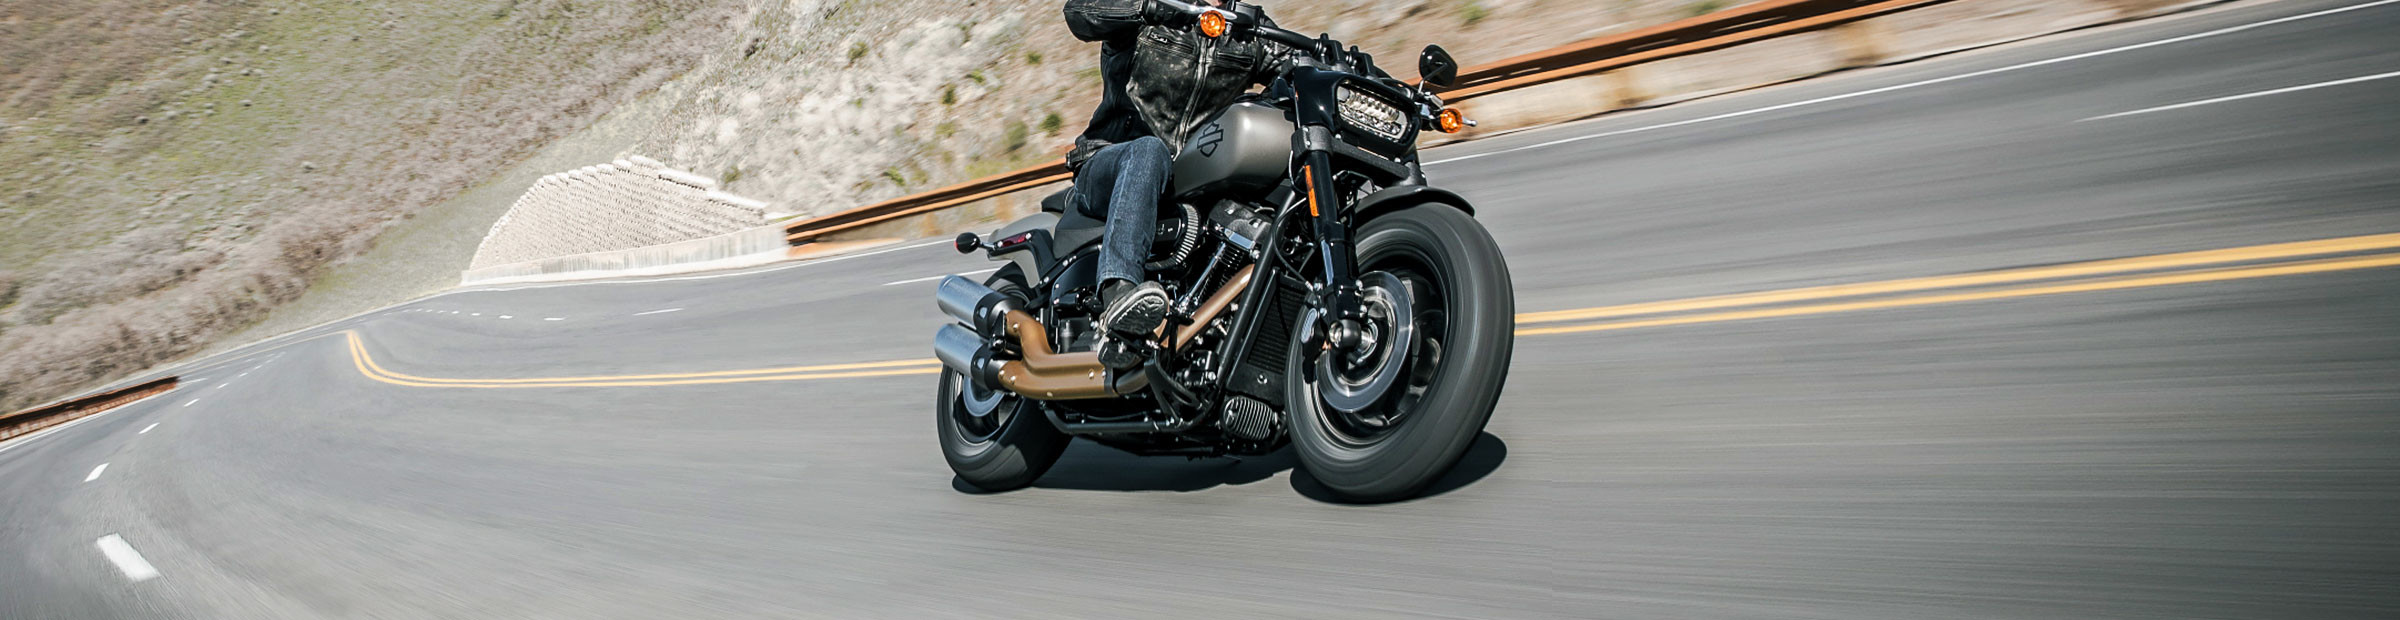 Find a Class at Harley-Davidson® of Panama City Beach